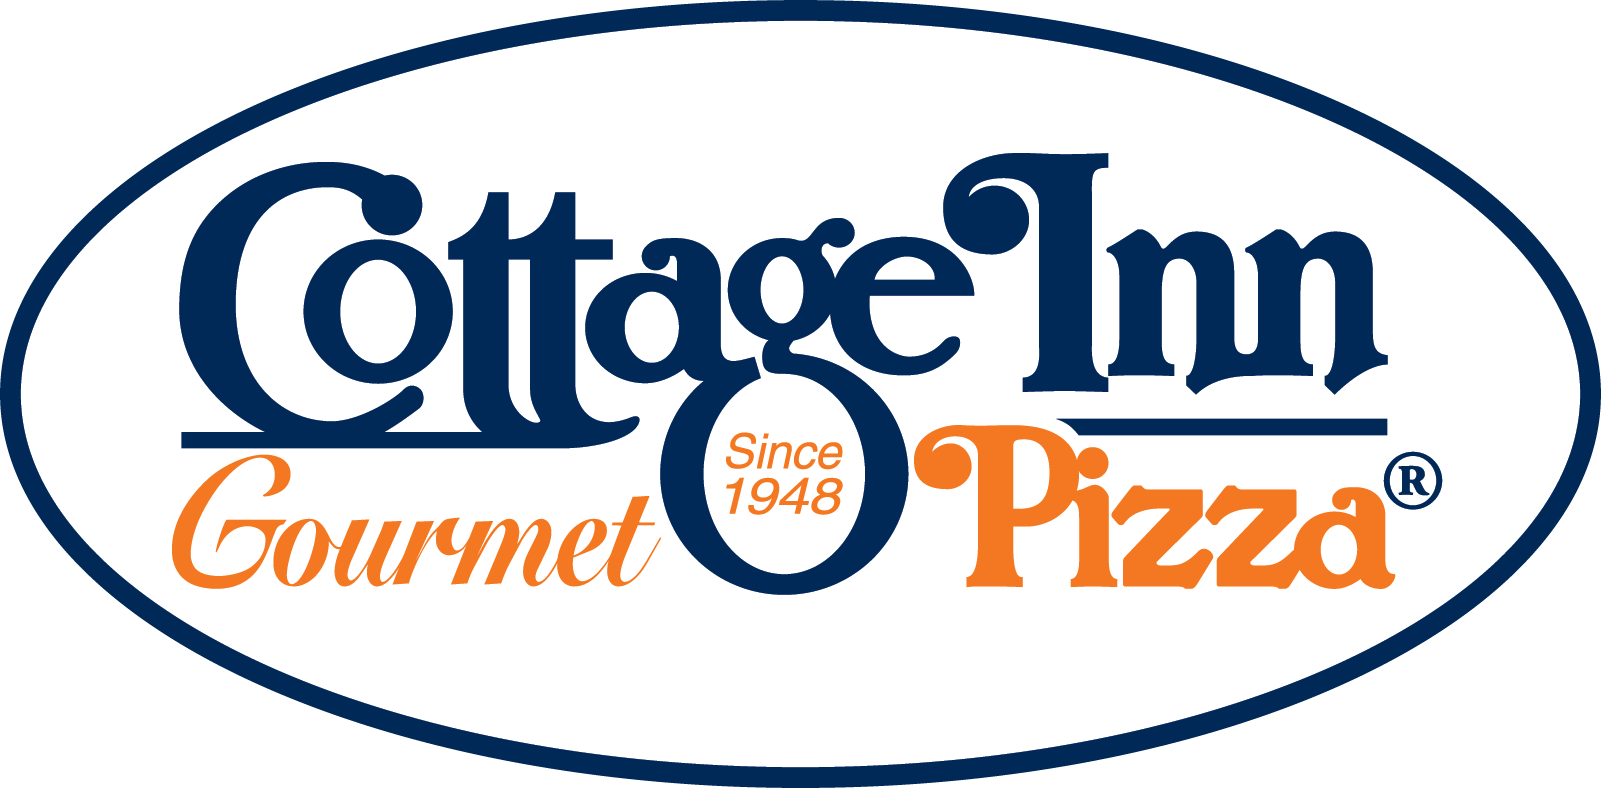 CottageInnLogo_oval-2.png